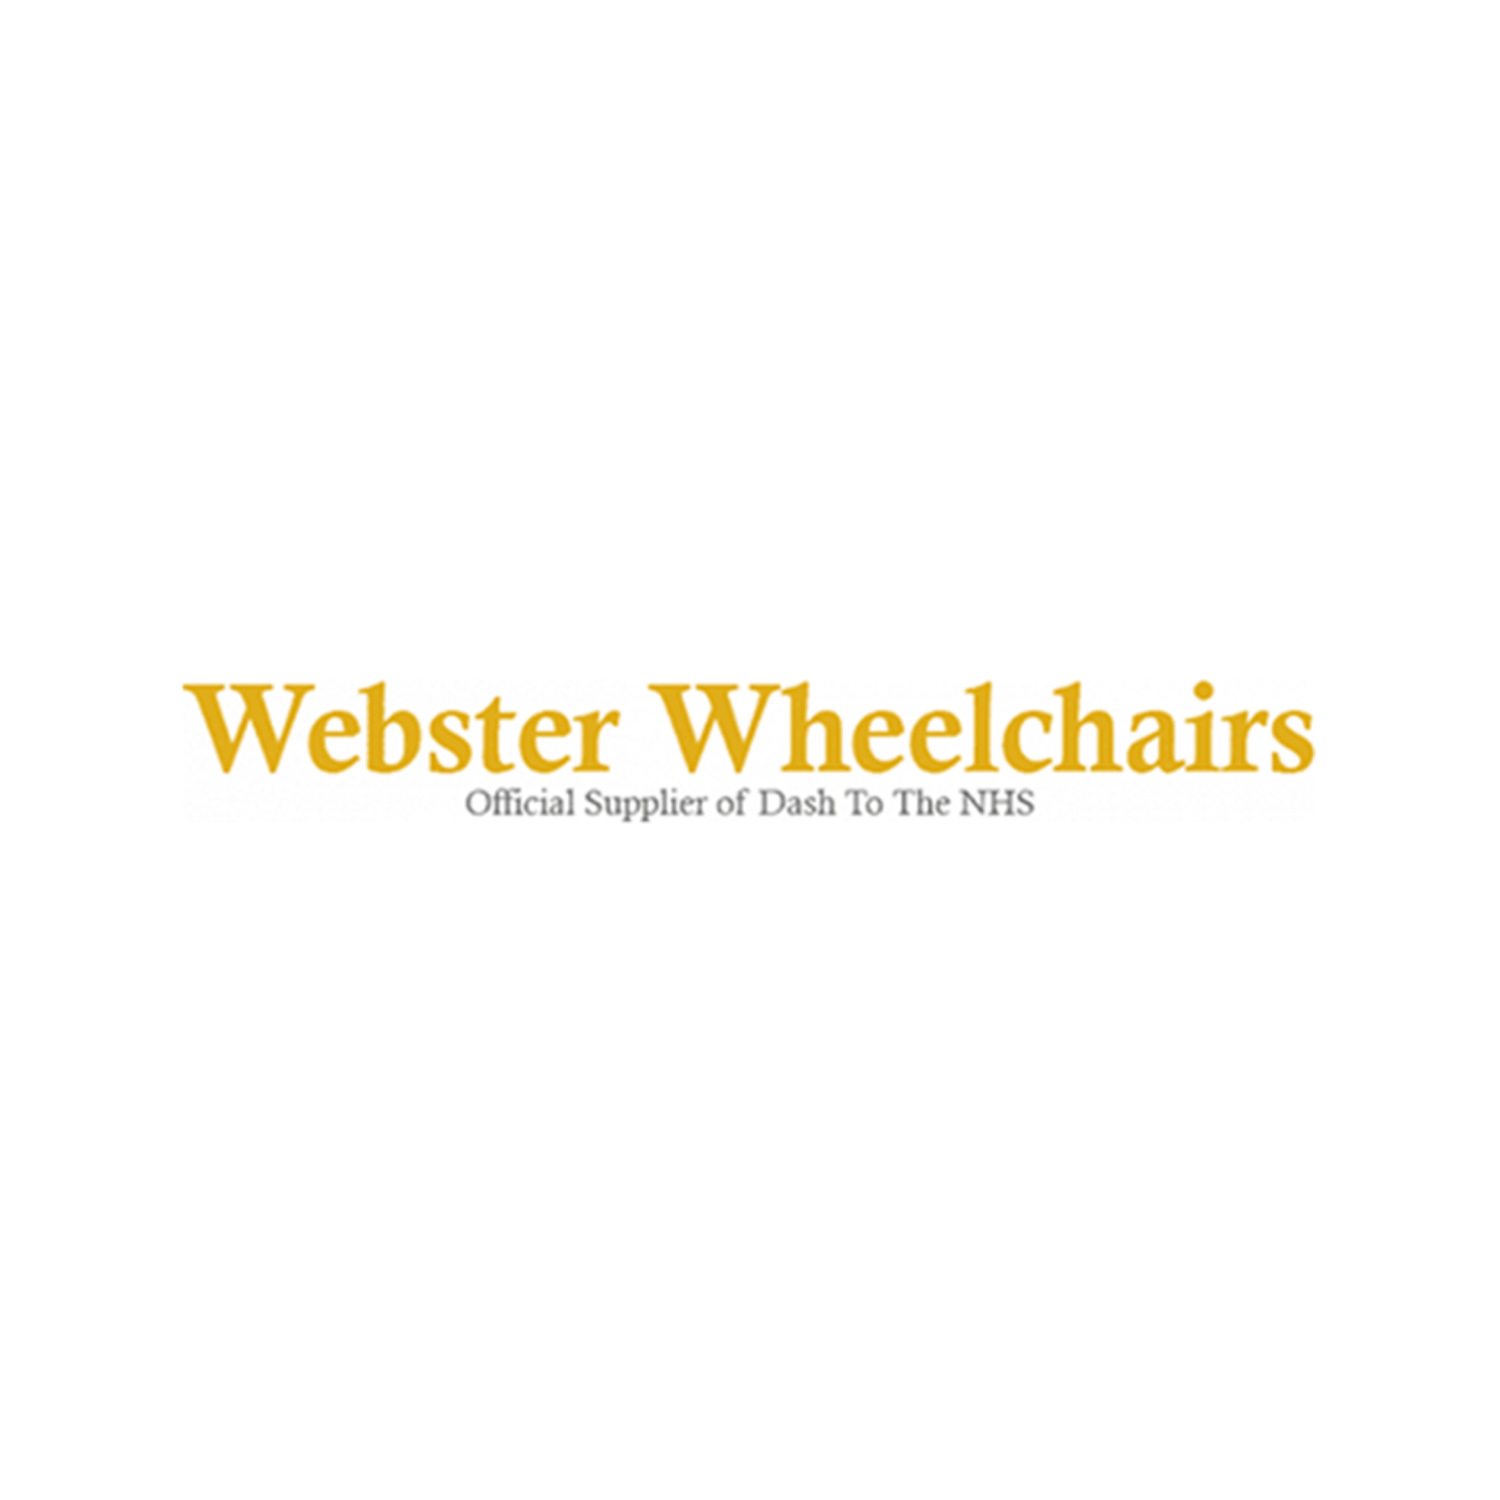 webster wheelchairs